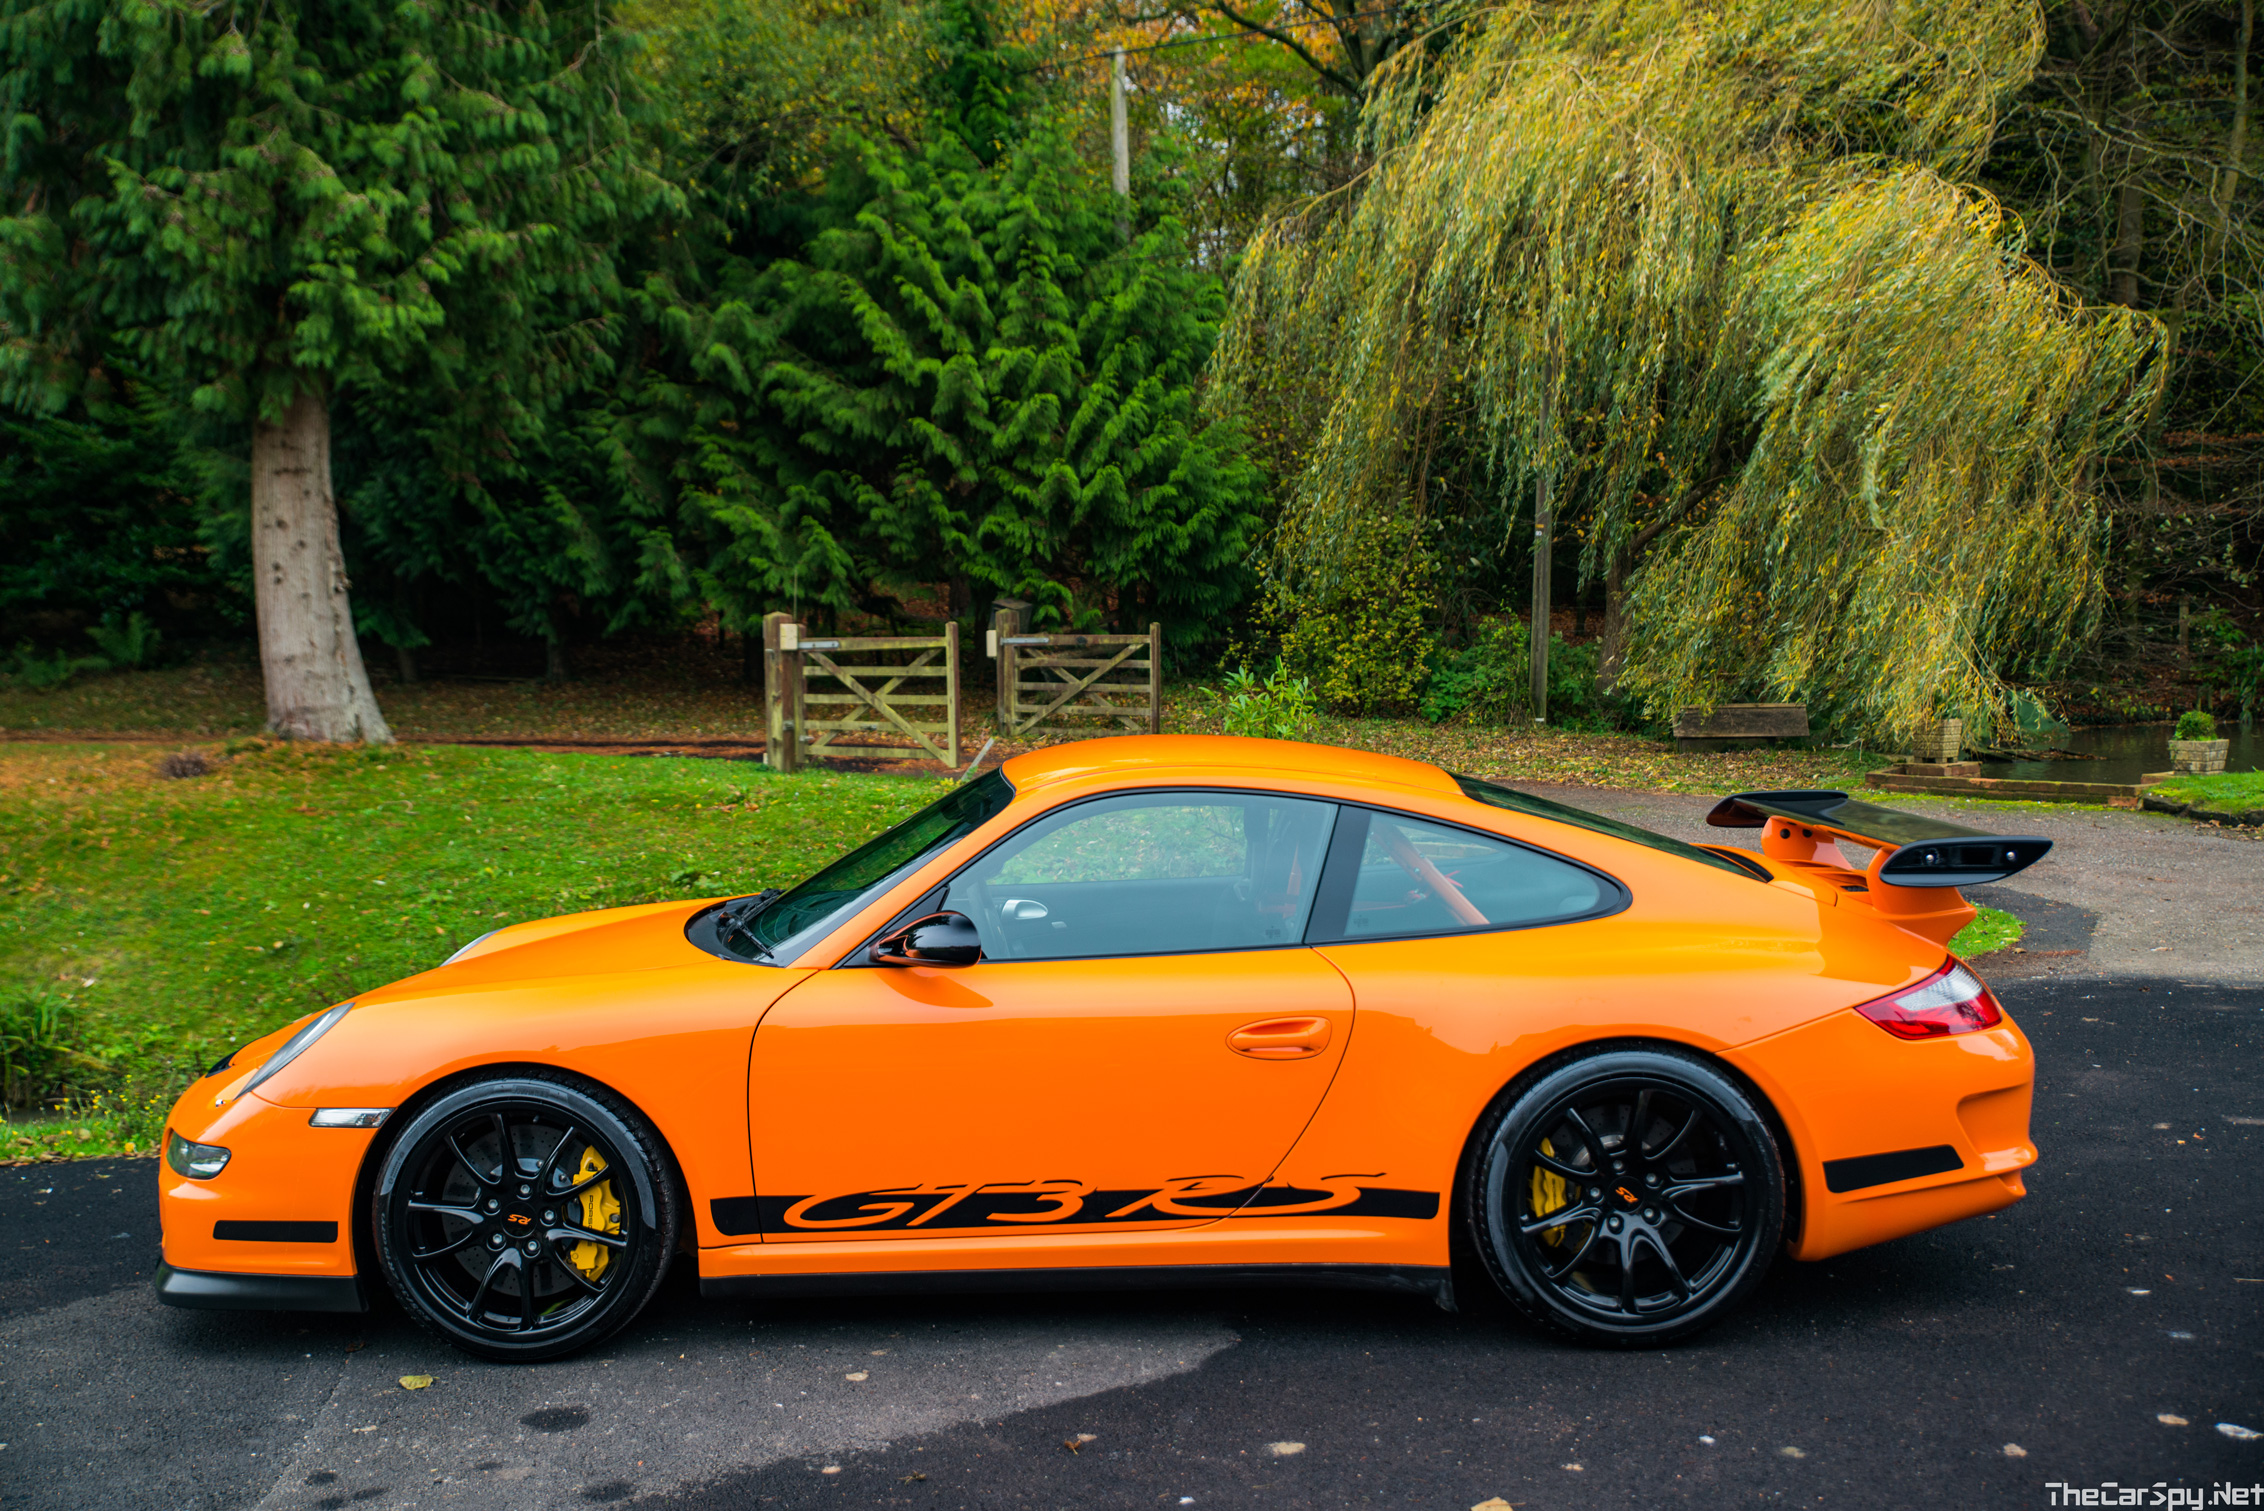 File Porsche 911 997 Gt3 Rs 3 6 Profil Jpg Wikimedia Commons